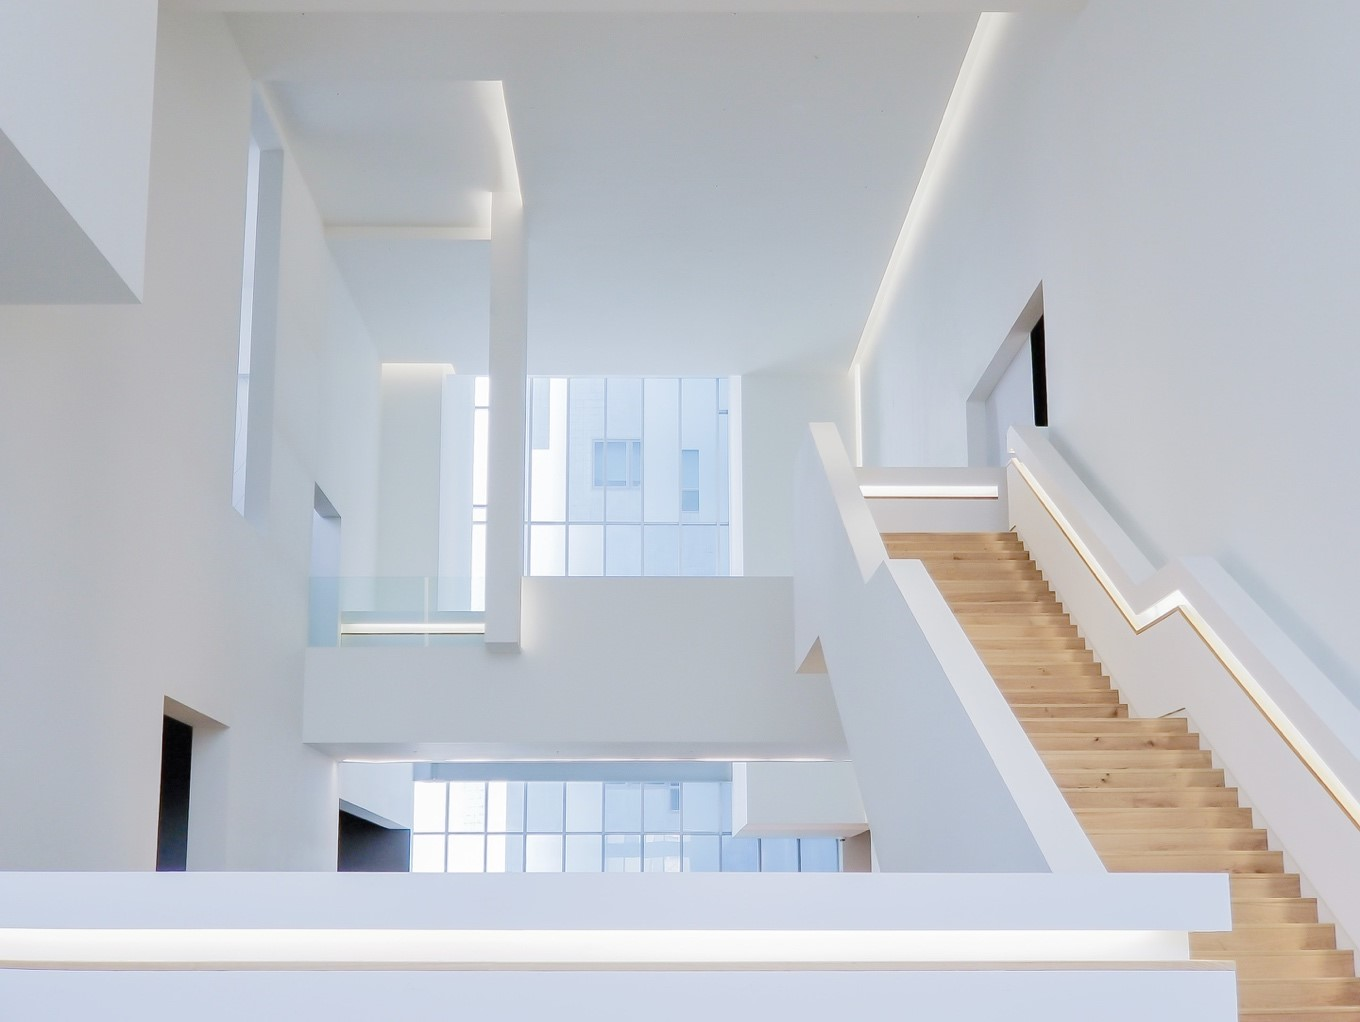 interior design trend staircase with LED lighting accents natural wood stairs white walls